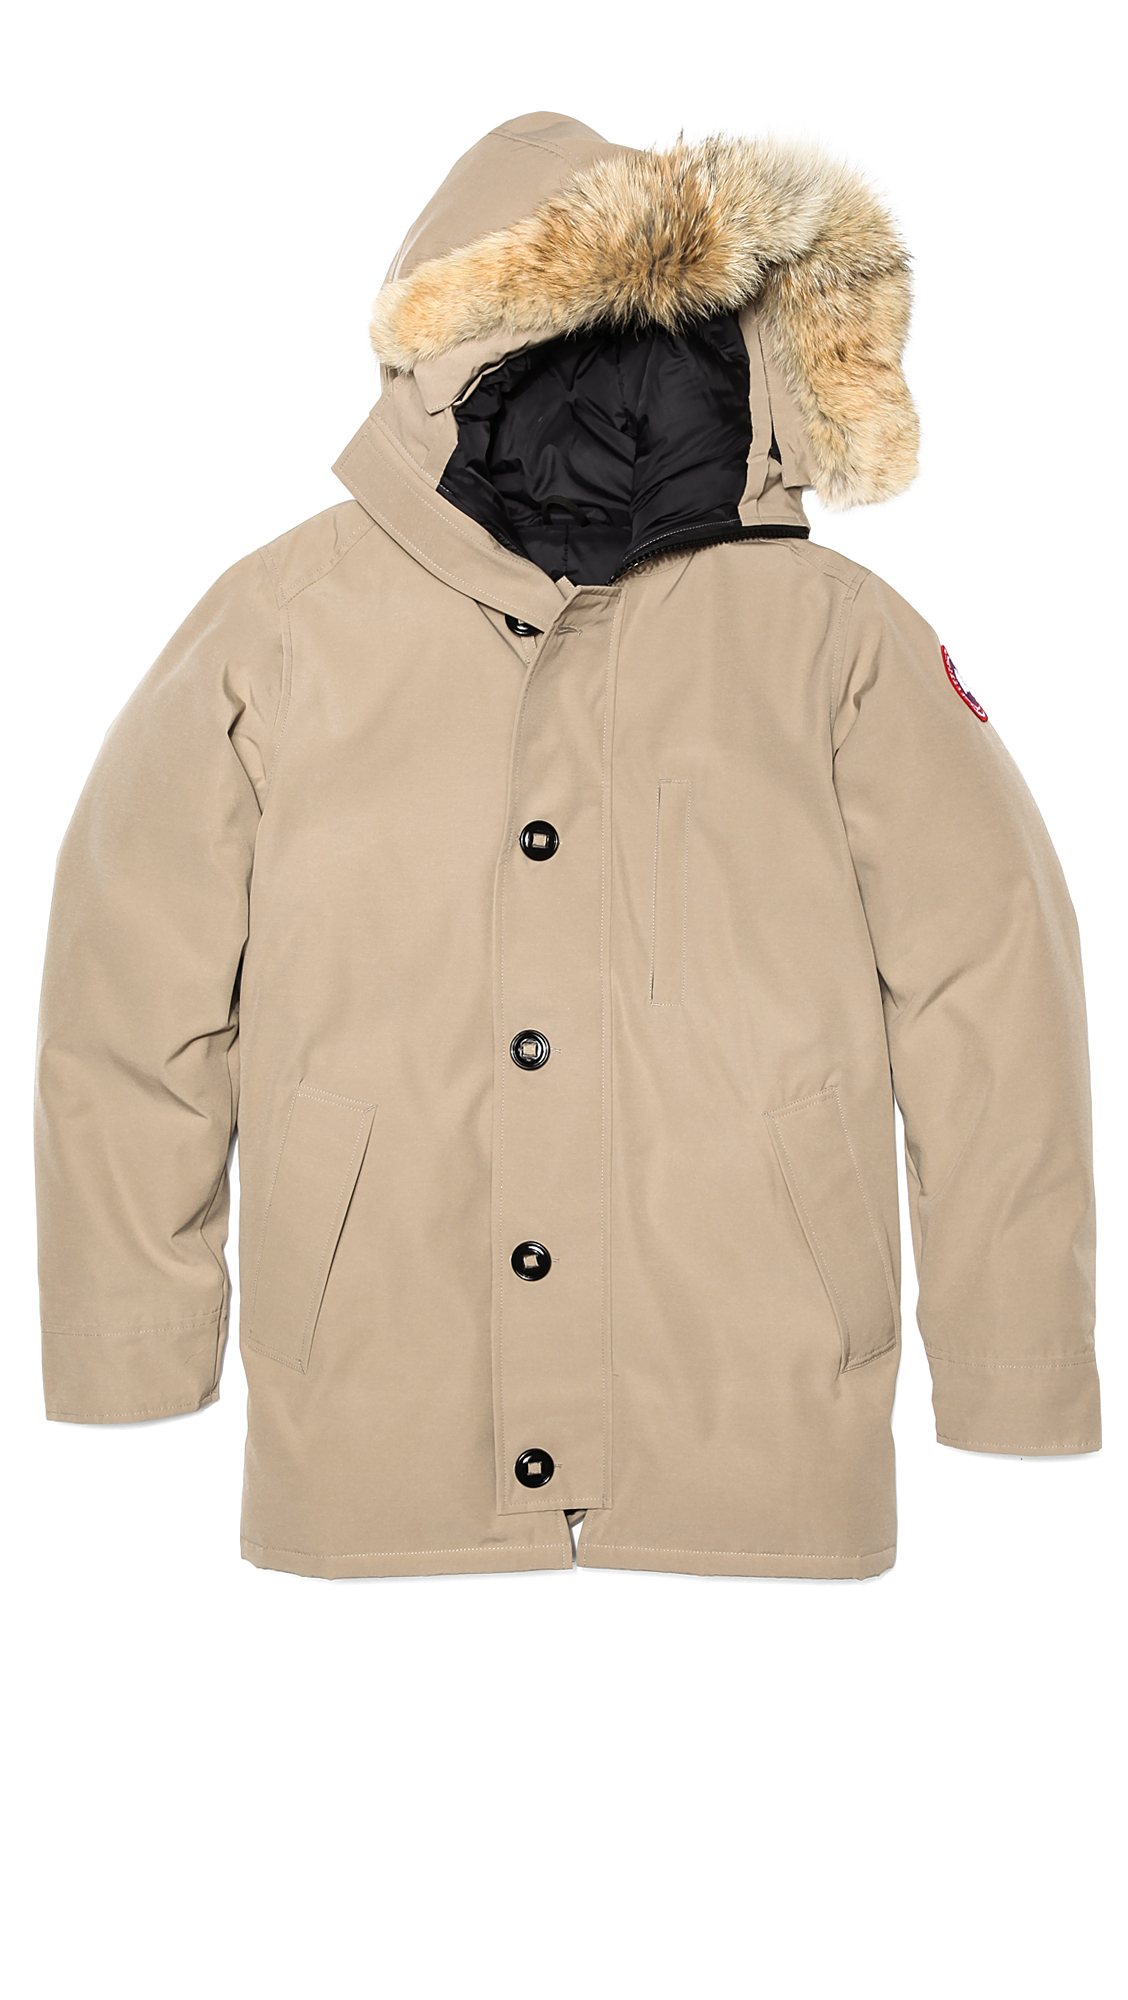 Canada Goose Chateau Parka With Fur In Beige For Men Tan